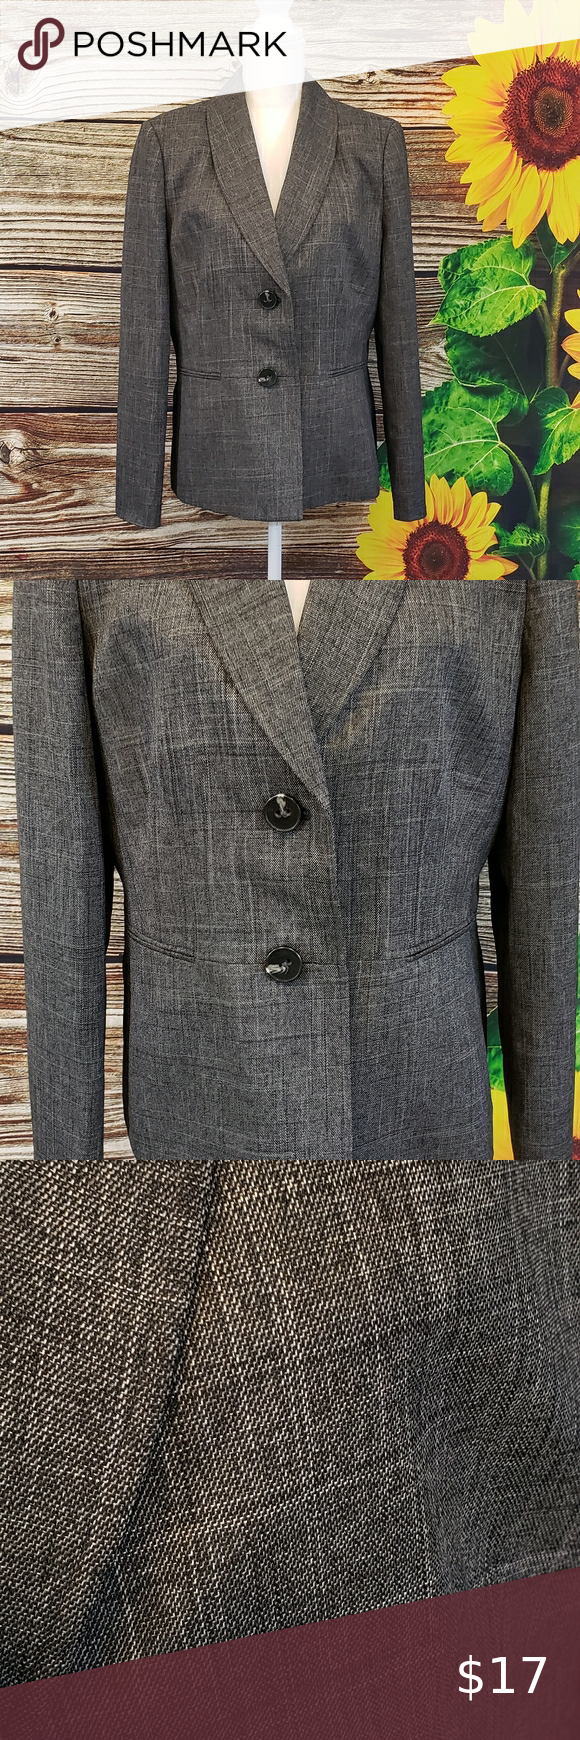 Gloria Vanderbilt women's gray dress jacket Size 16 Jacket is in excellent condition.  Front pockets are looks only  Button down front  Gray Shoulders: padded 17